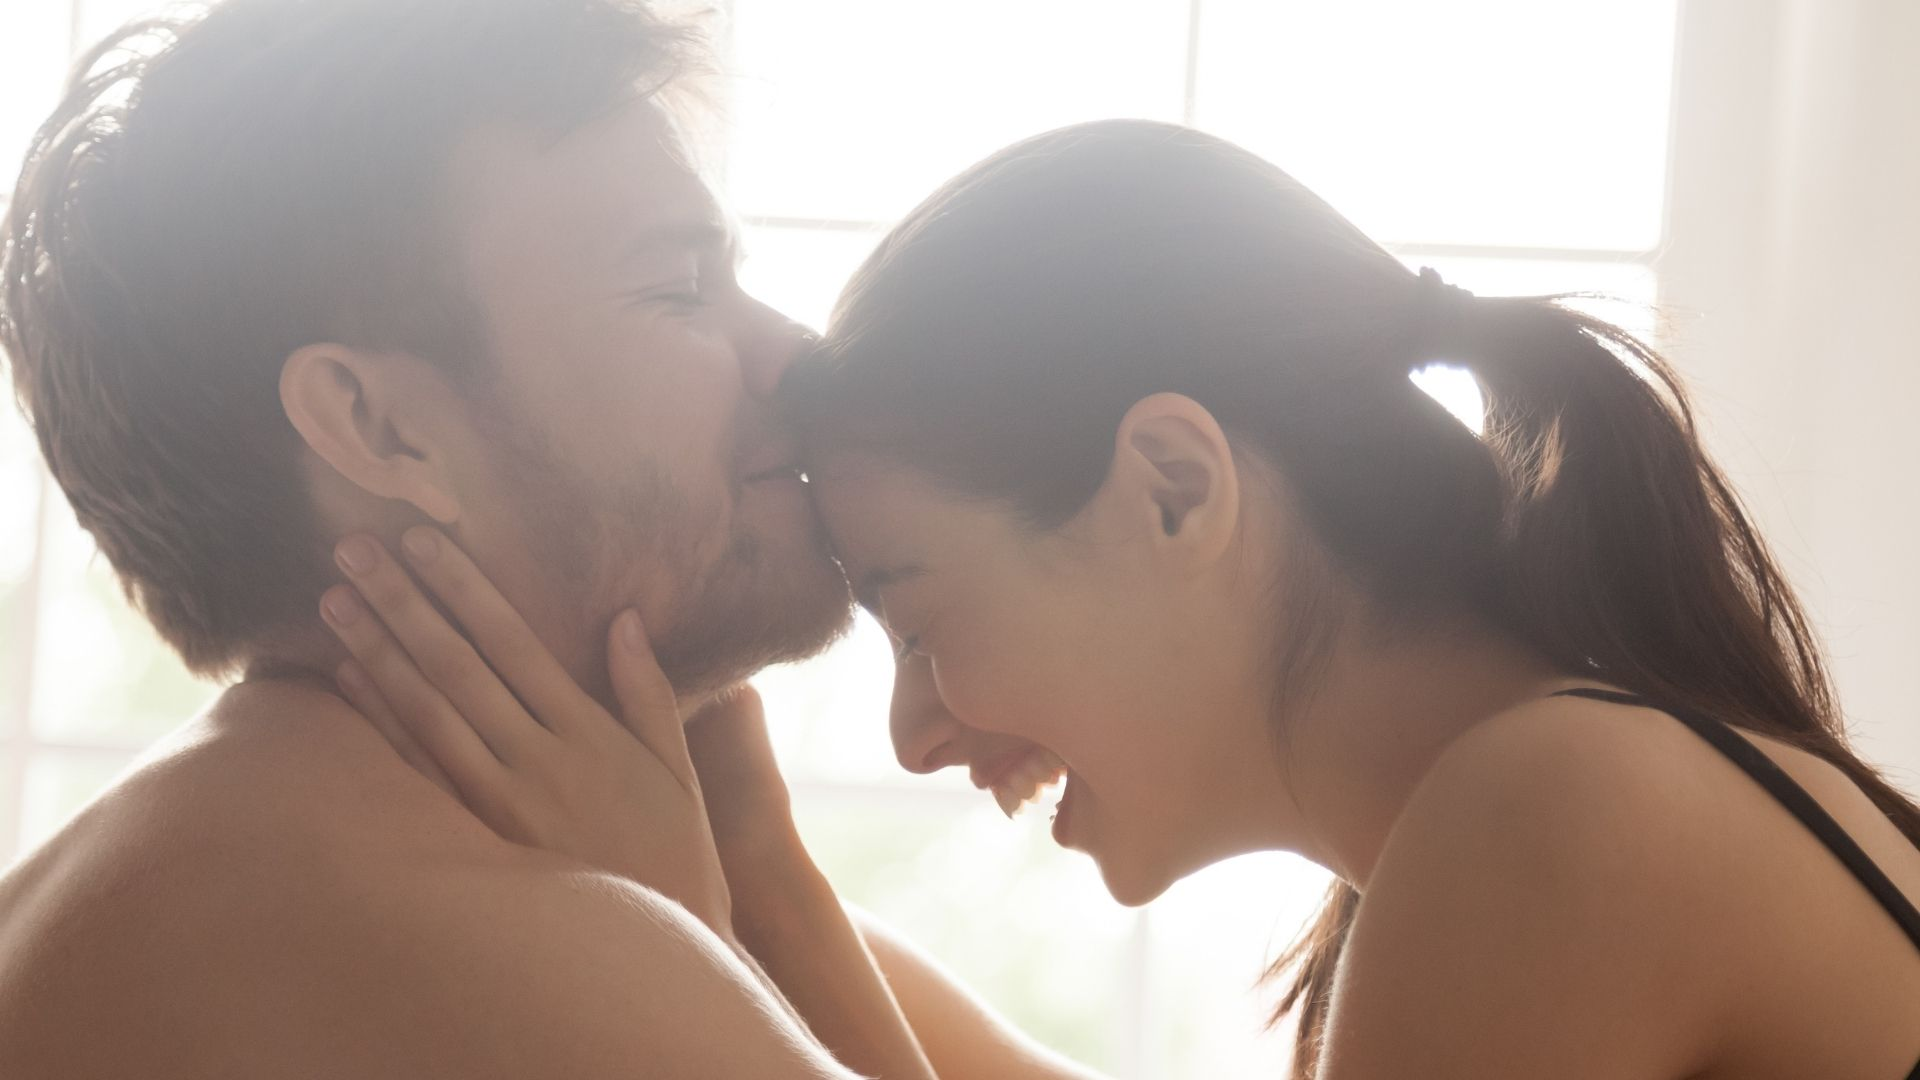 Grip Issues - How To Spice Up Your Sex Life - A dark haired woman leans forward to touch her male partner, he kisses her forehead. She is laughing and there is a window in the background